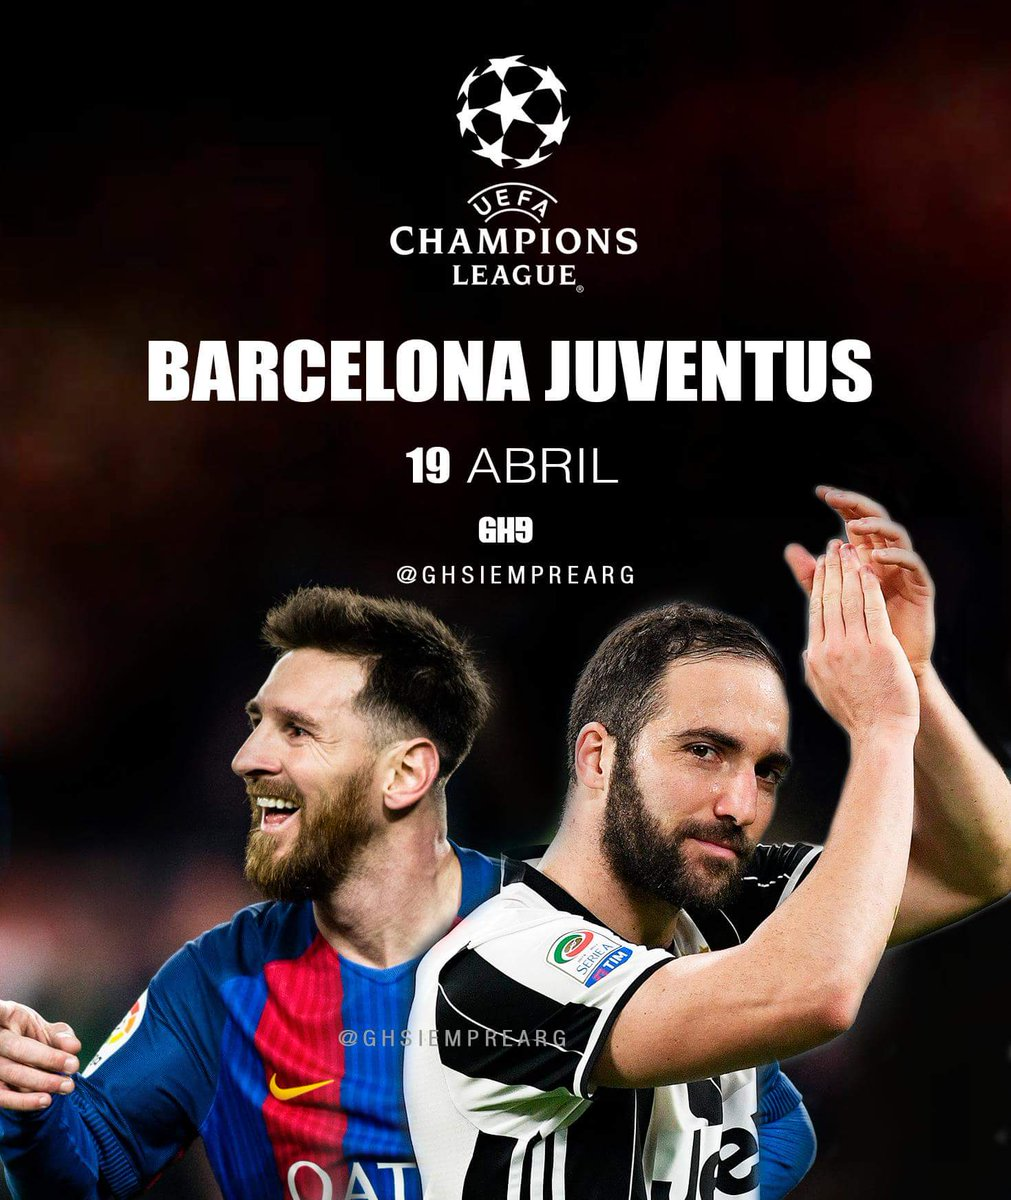 Vedere BARCELLONA JUVENTUS Streaming Rojadirecta: Diretta Canale 5 VIDEO Online Gratis Champions League